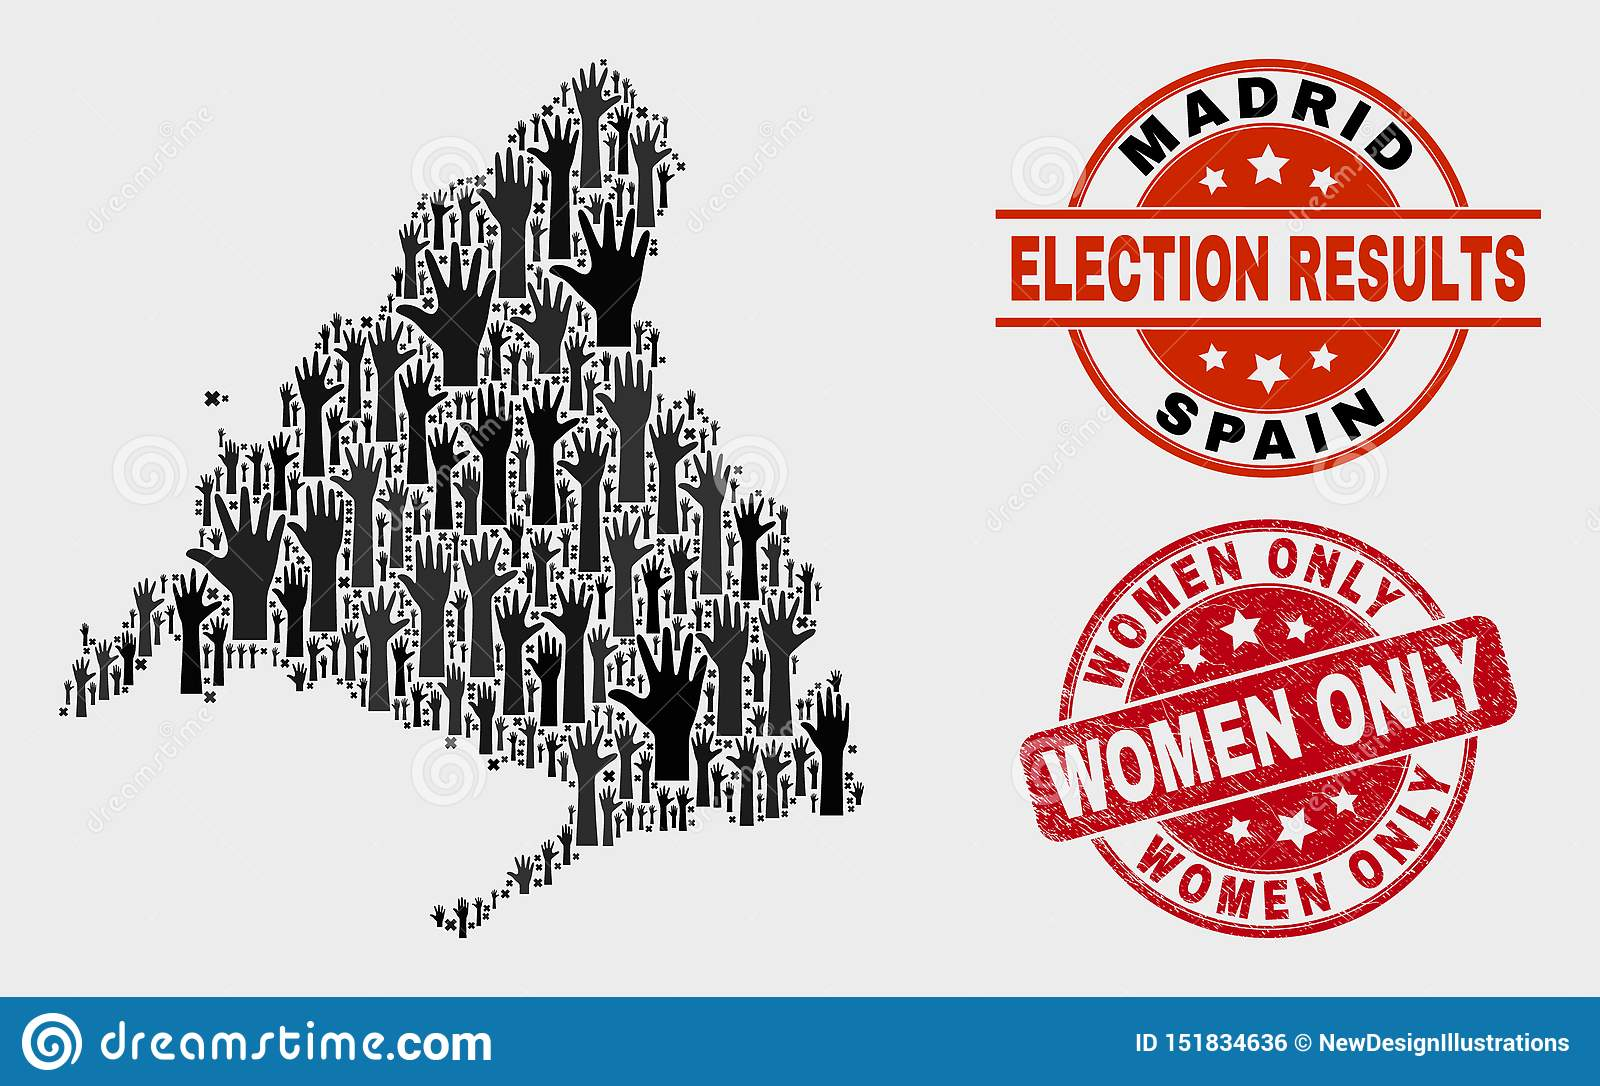 Collage of Electoral Madrid Province Map and Grunge Women Only Stamp Seal